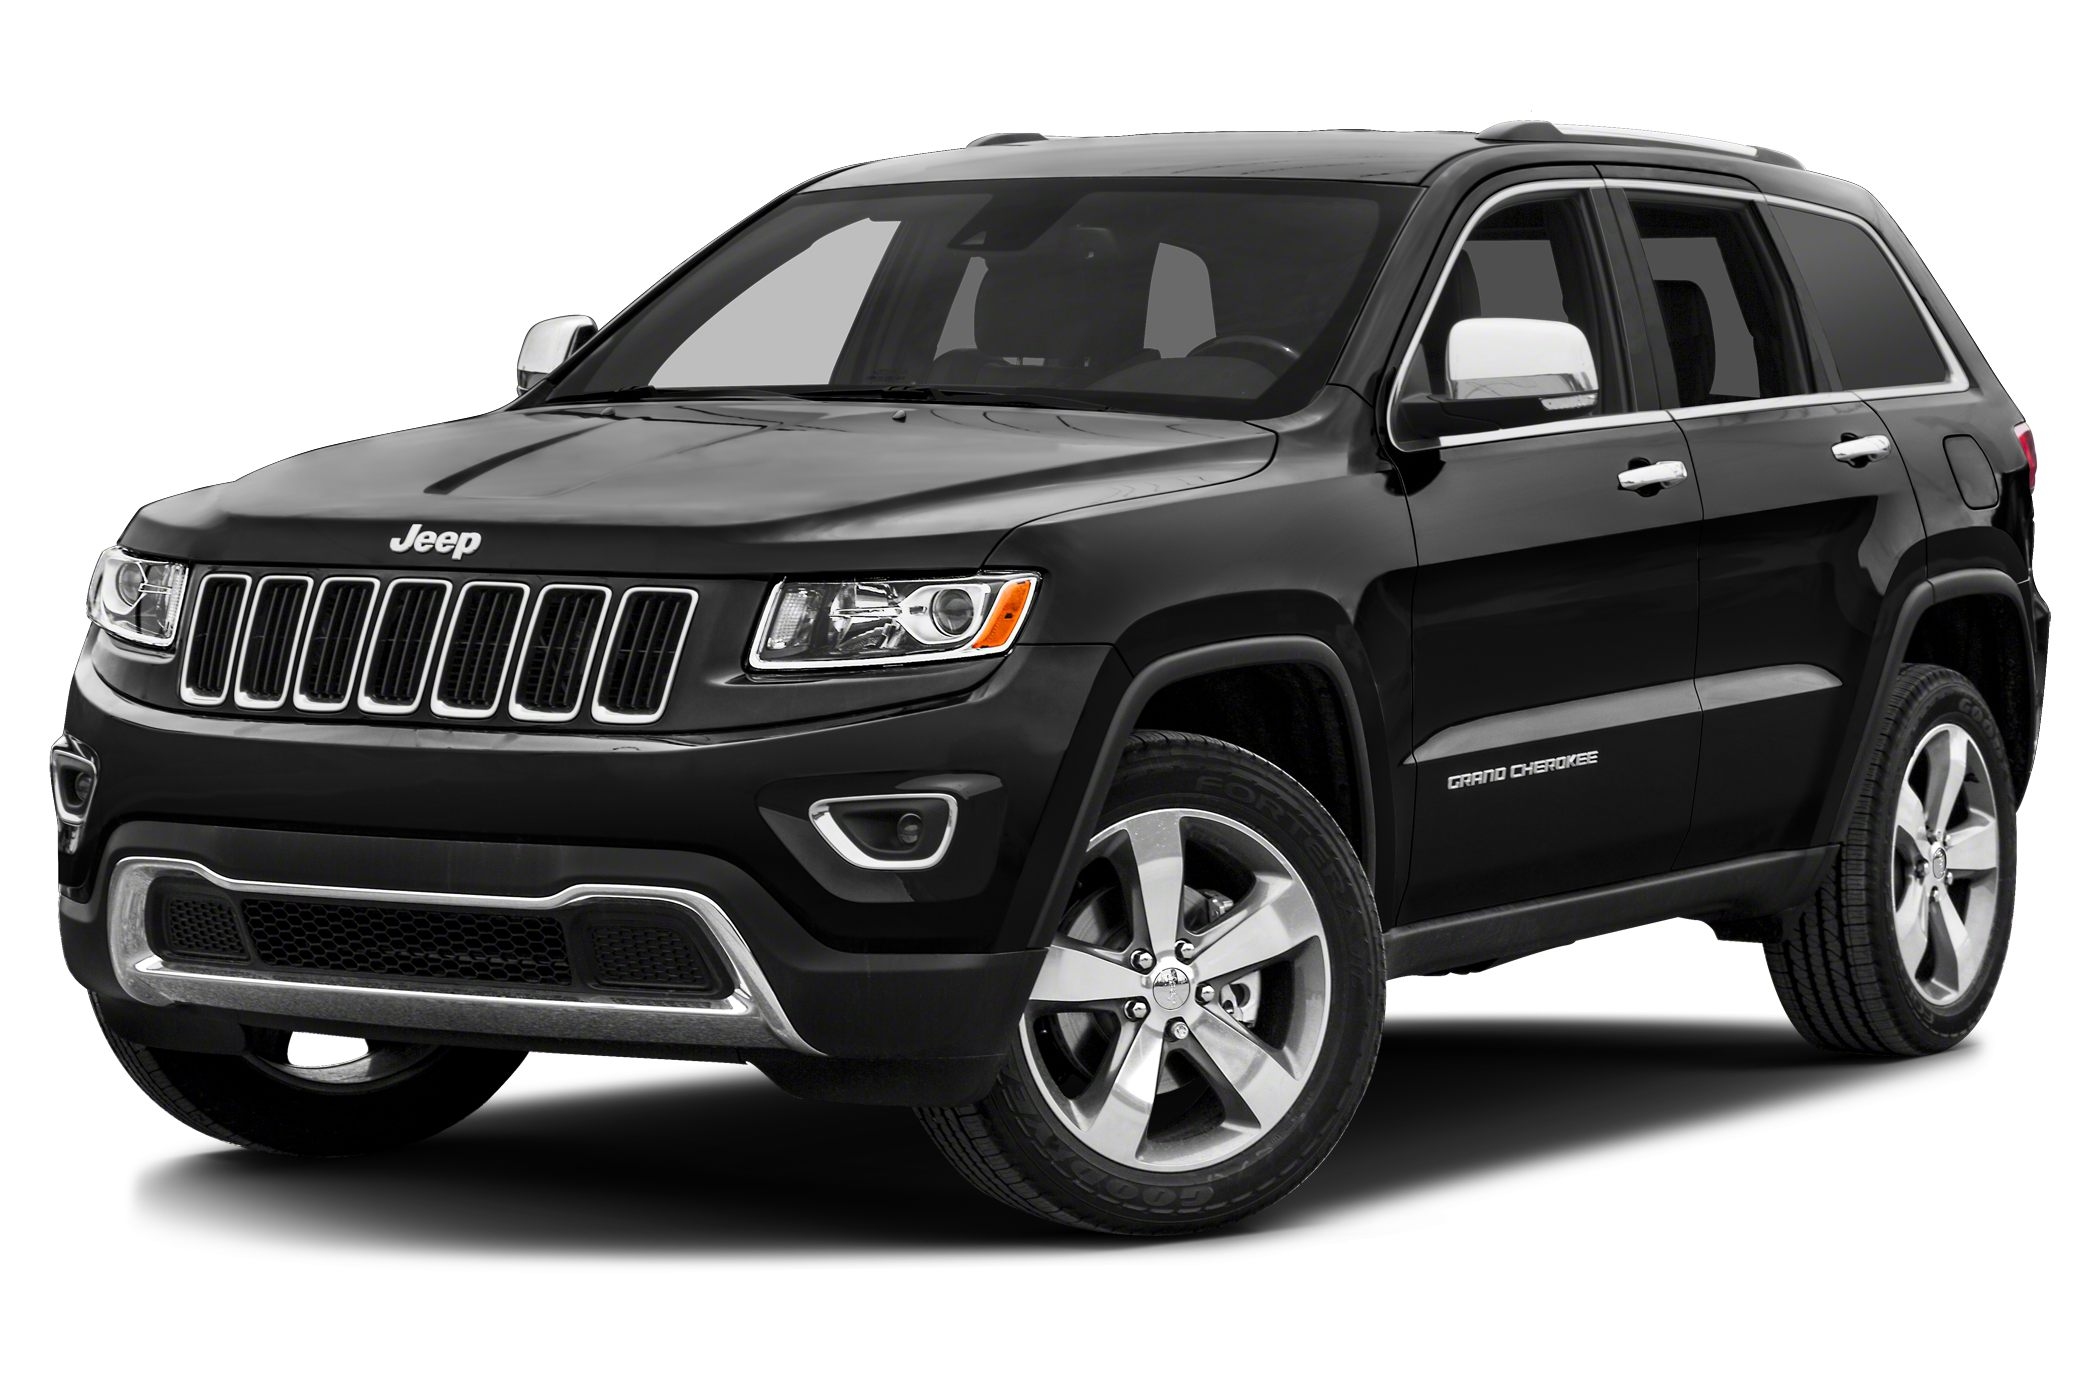 2015 Jeep Grand Cherokee Limited SUV for sale in Spokane for $41,065 with 0 miles